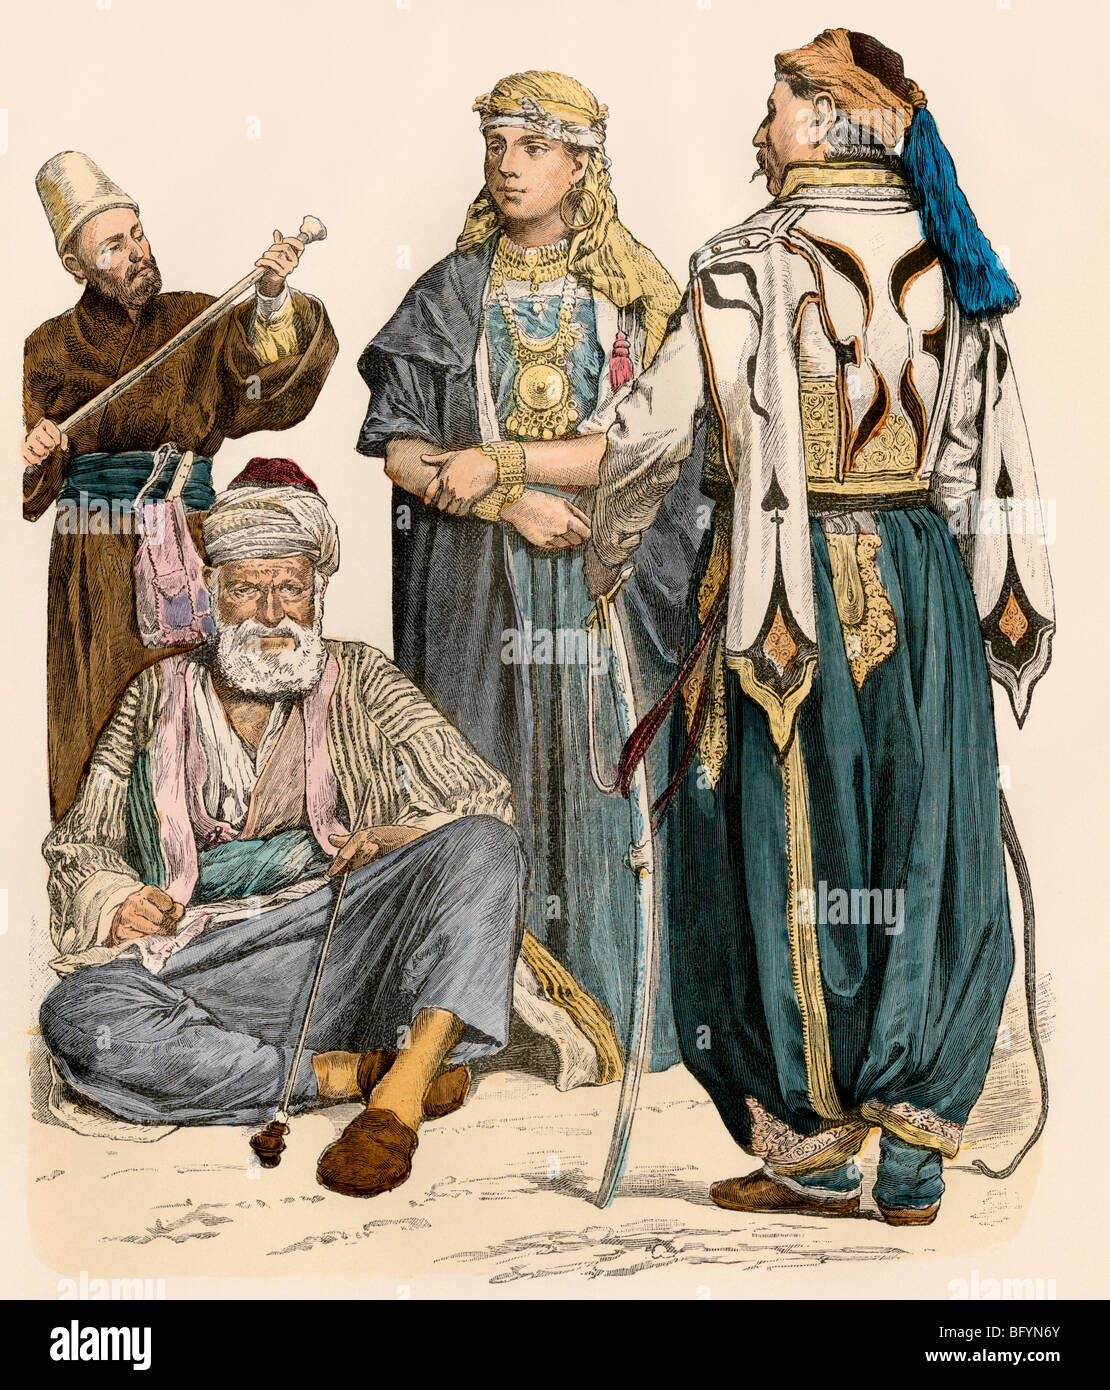 People of Syria, including a Druze woman and a dervish (left rear). Hand-colored print - Stock Image